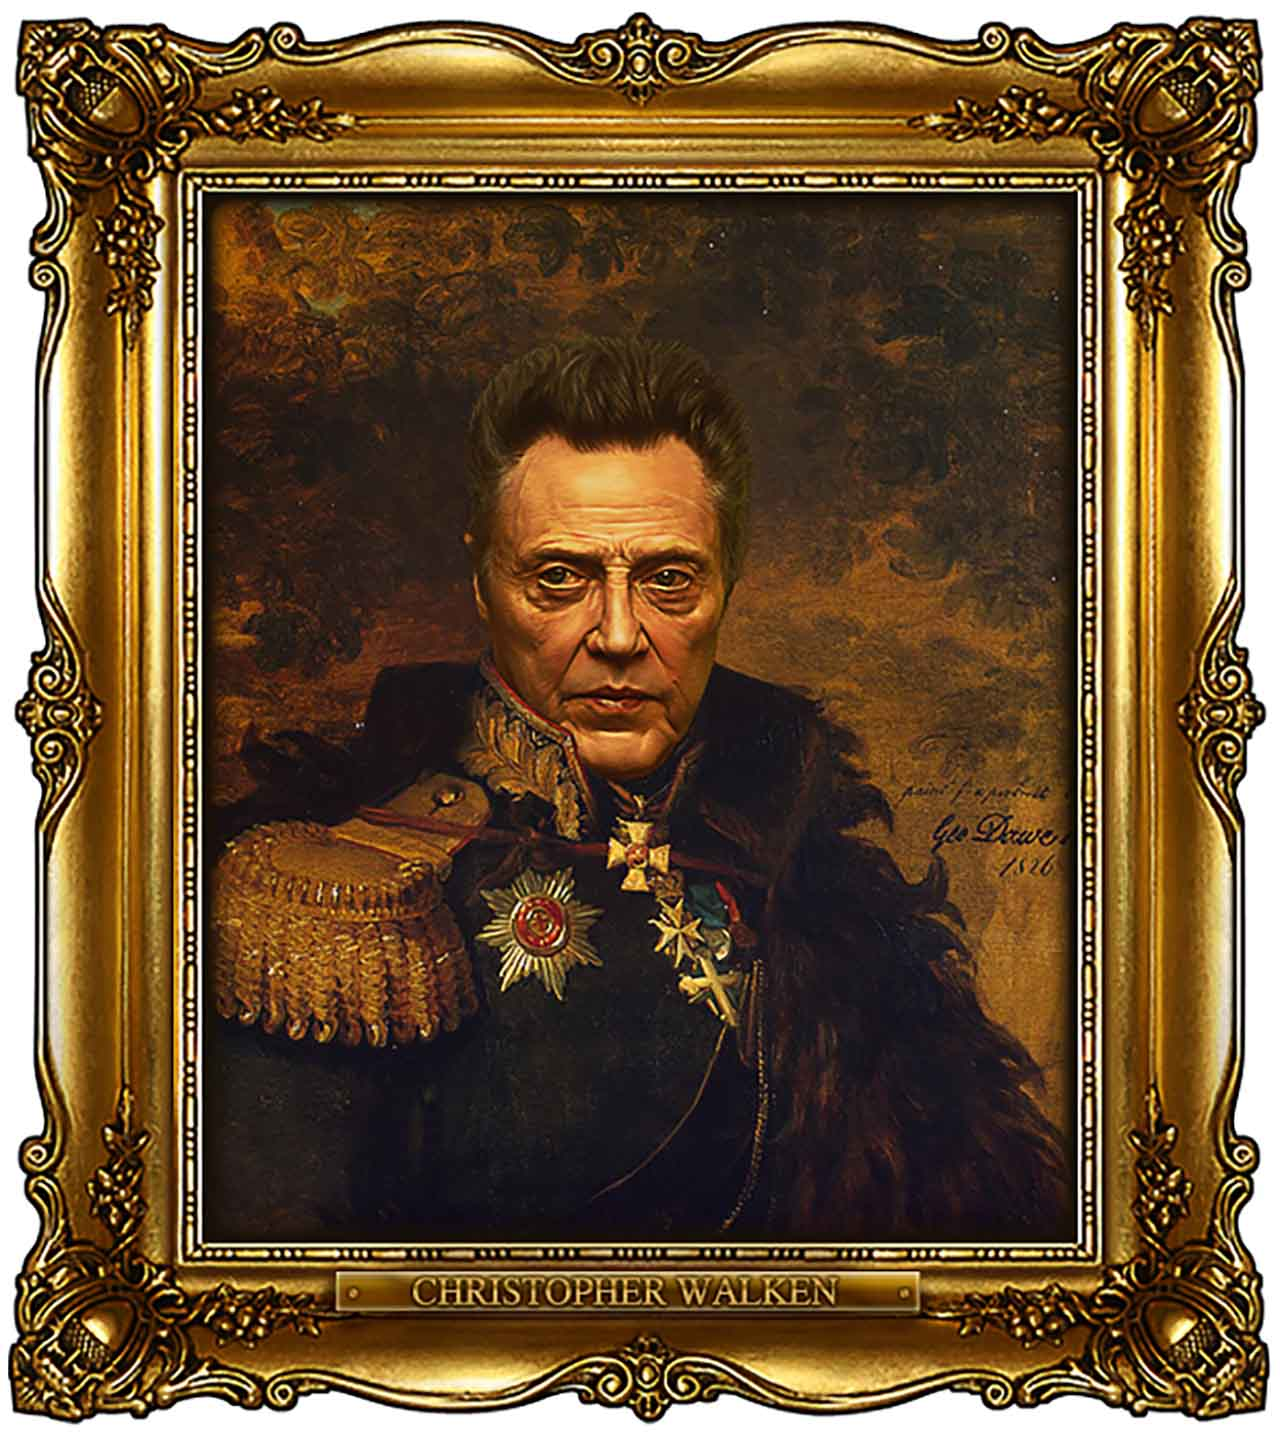 Artist Turns Famous Actors Into Russian Generals - Christopher Walken